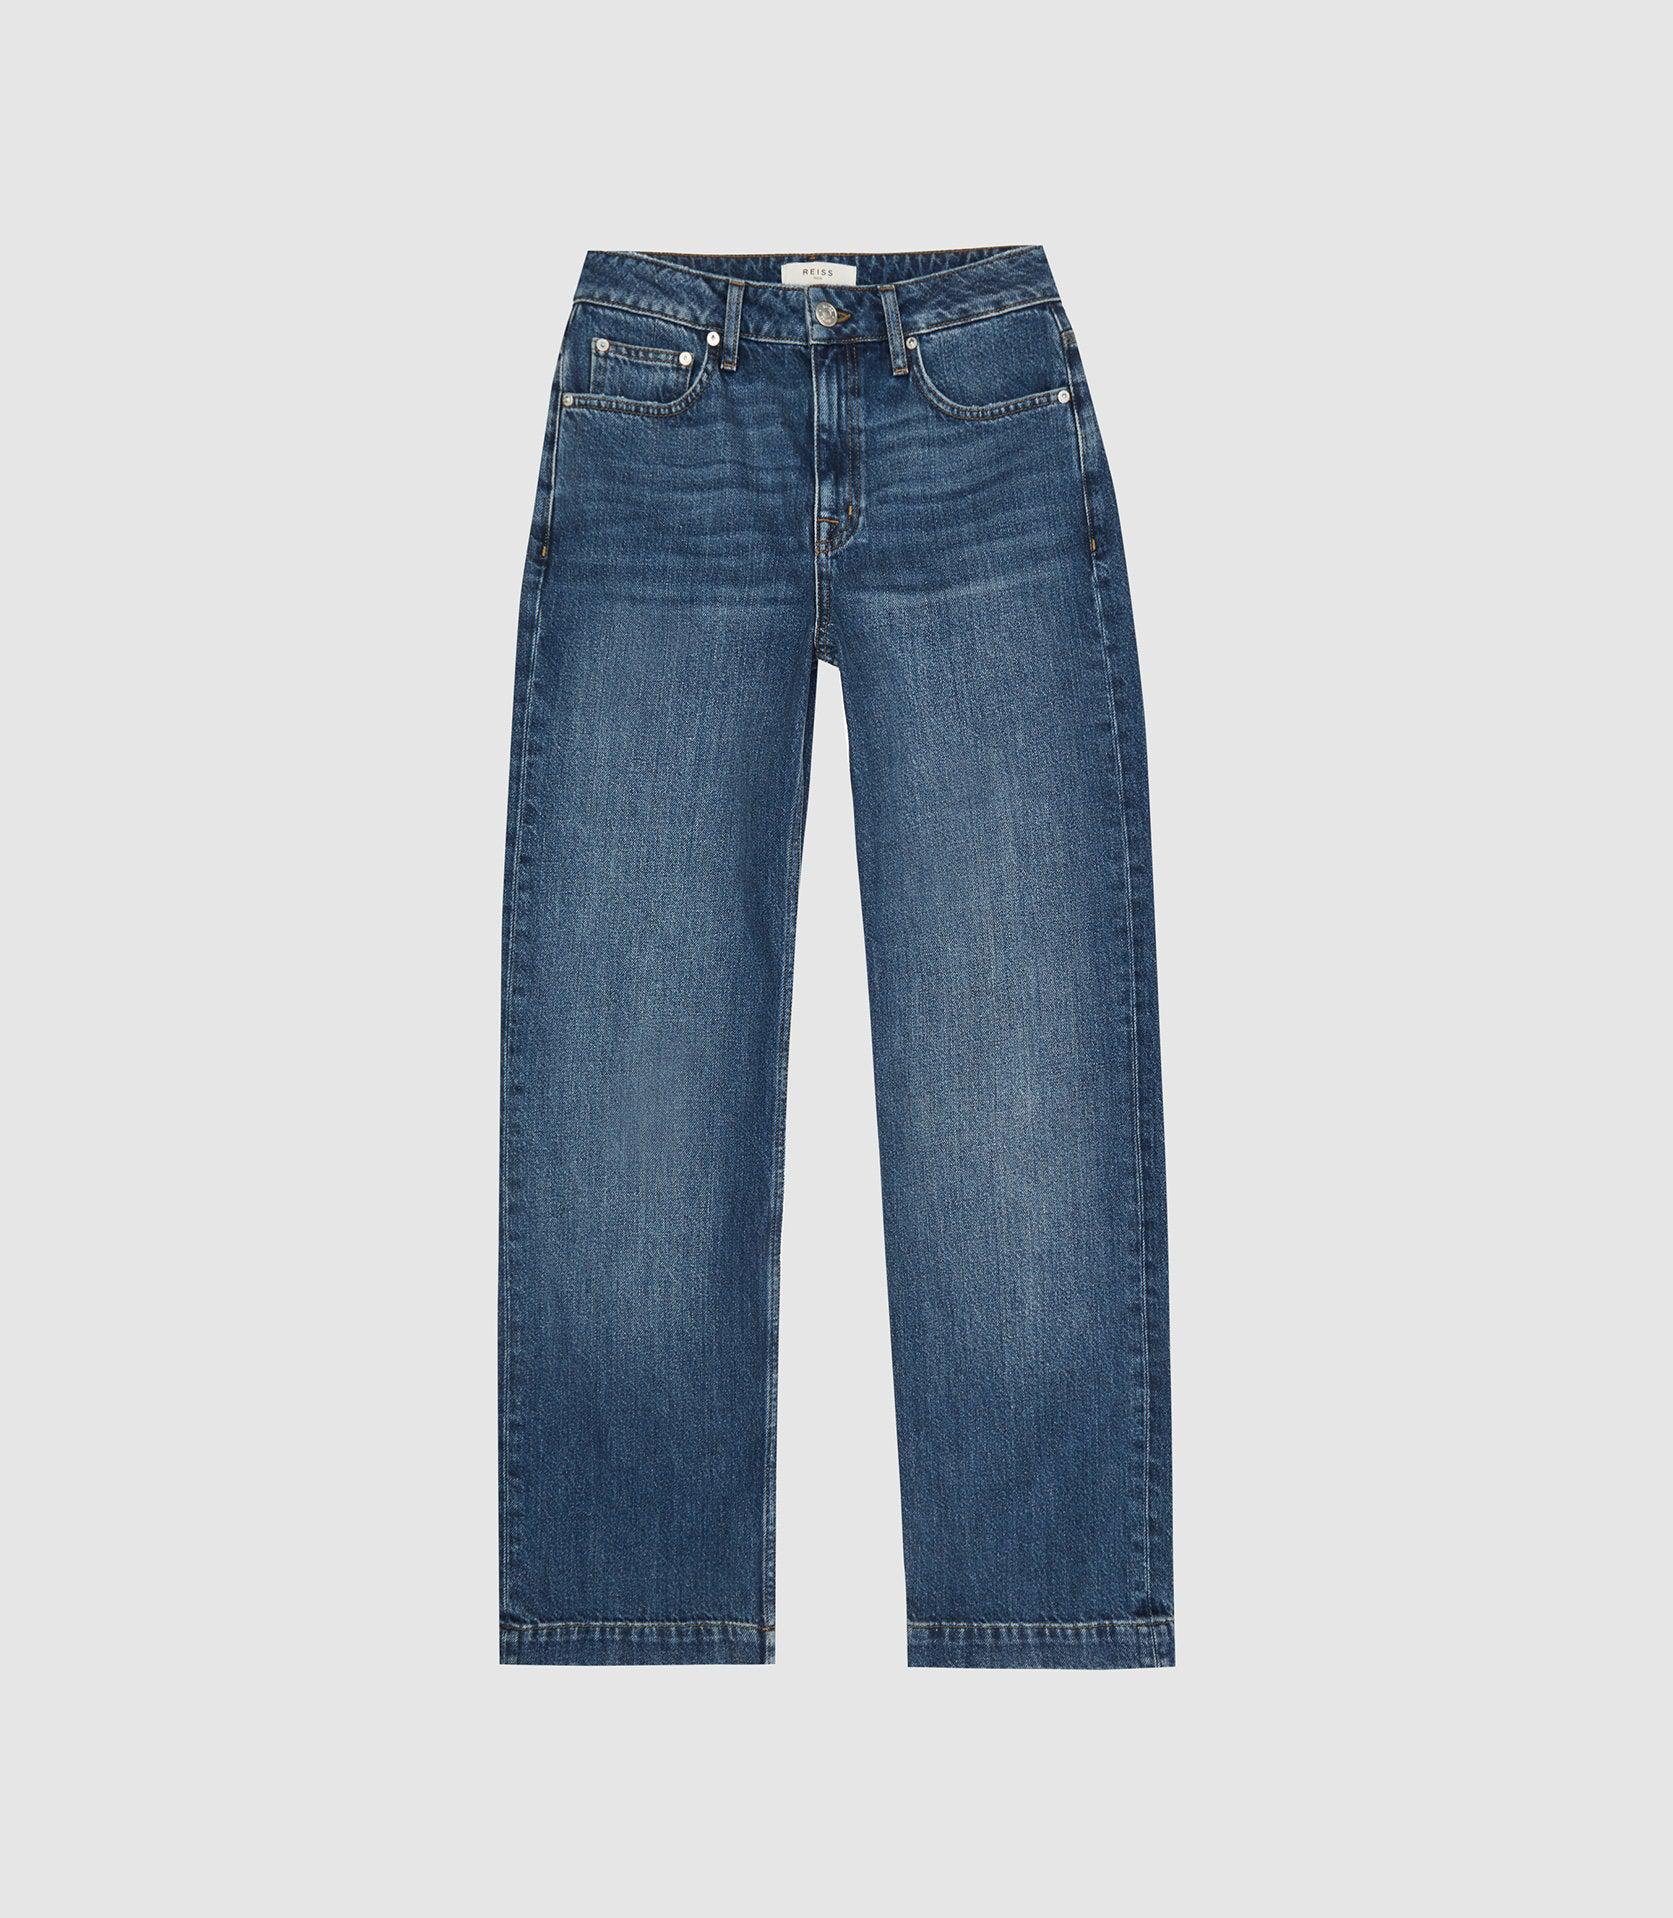 ADELE - MID RISE RELAXED WIDE LEG JEANS 3